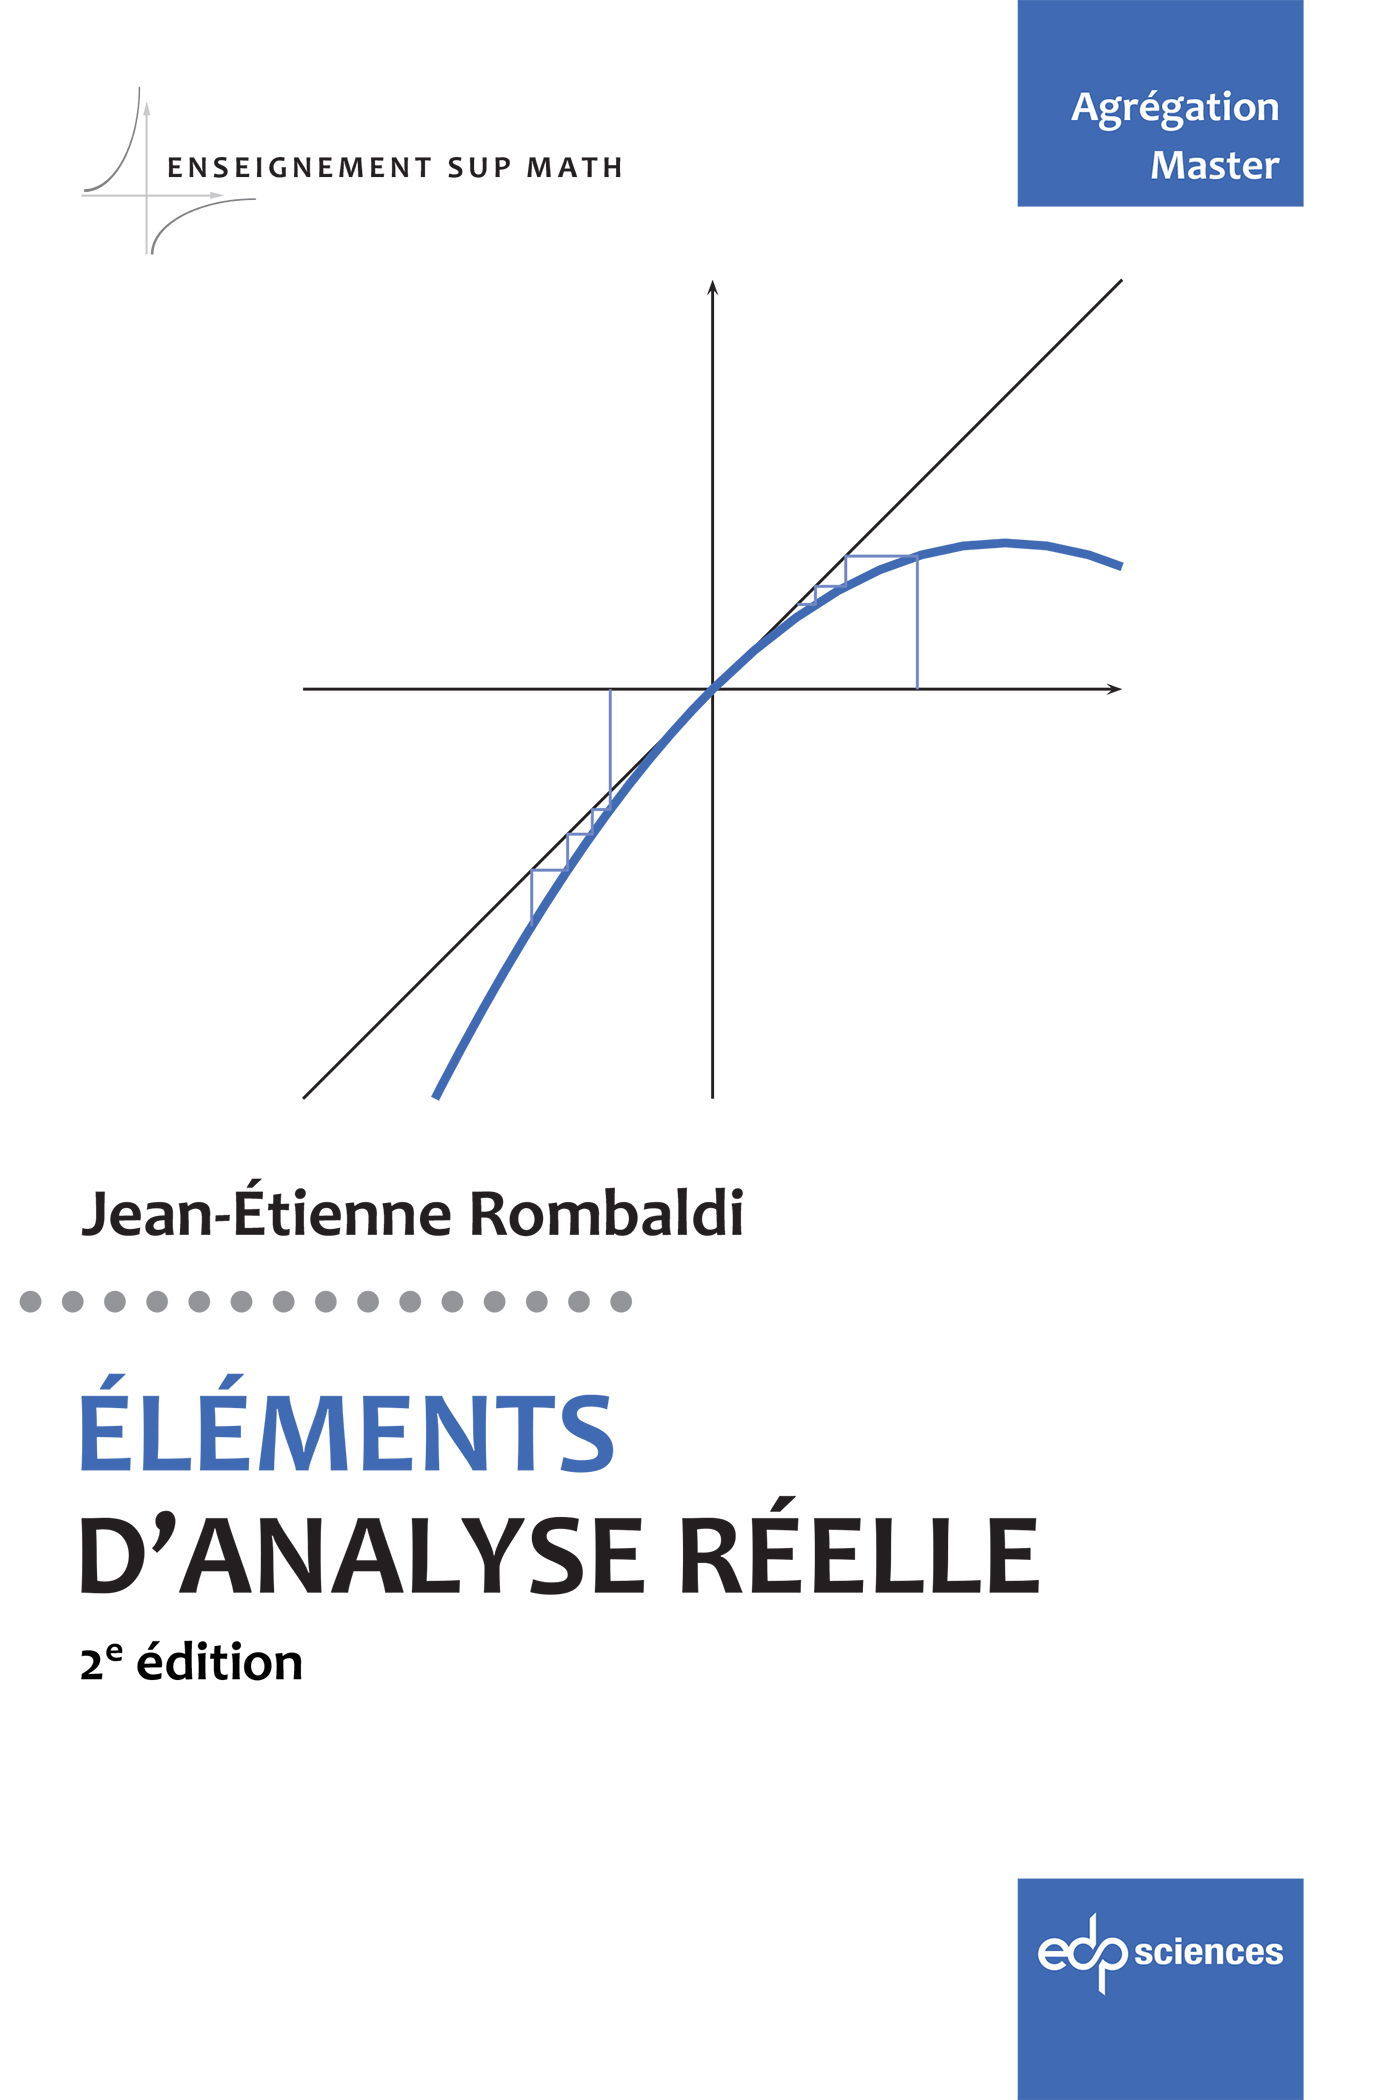 ELEMENTS D'ANALYSE REELLE - 2E EDITION